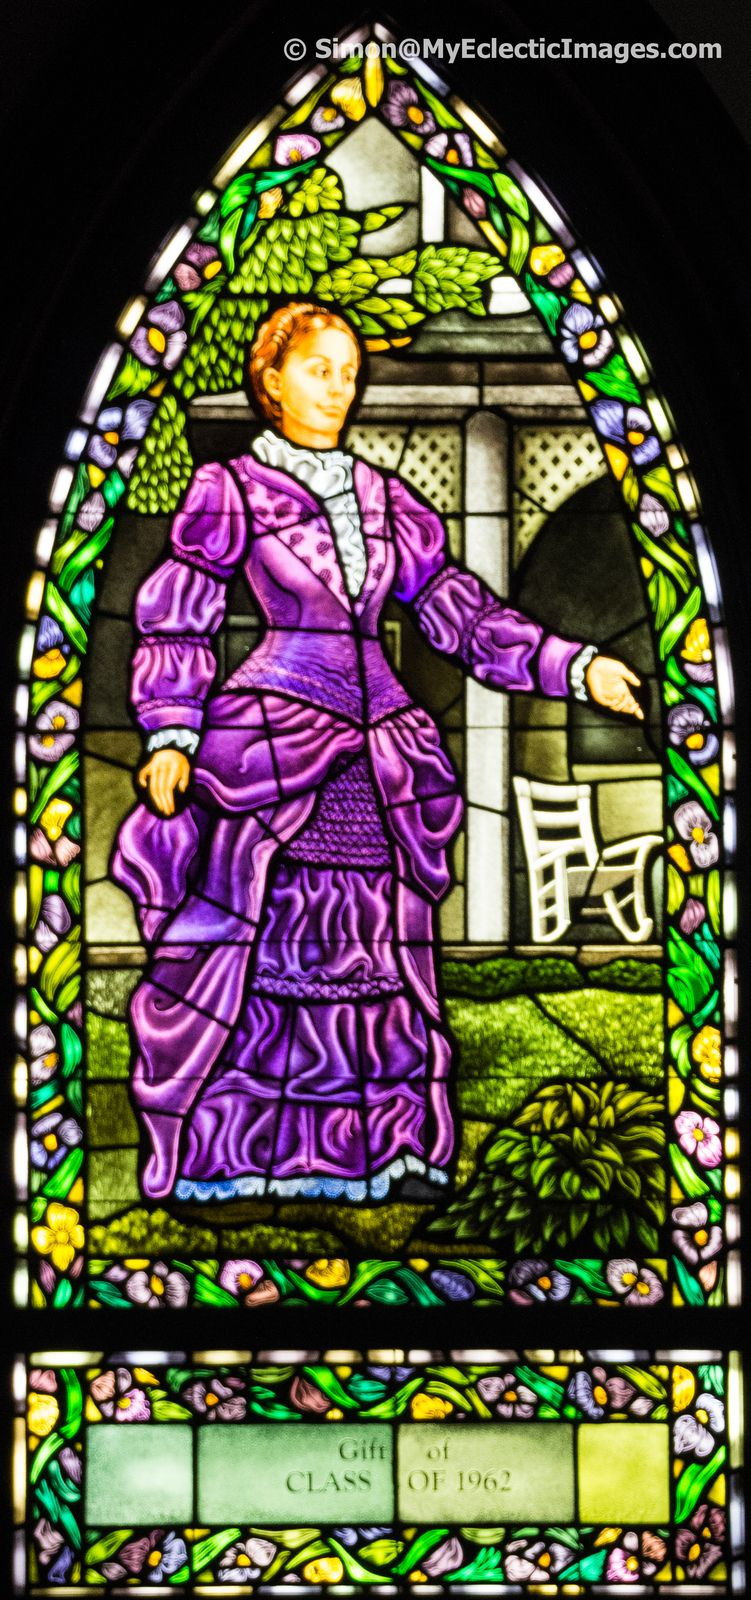 Commemorating-Olivia-Langdon-Clemens-in-stained-glass-in-chapel-of-Cowles-Hall-.jpg